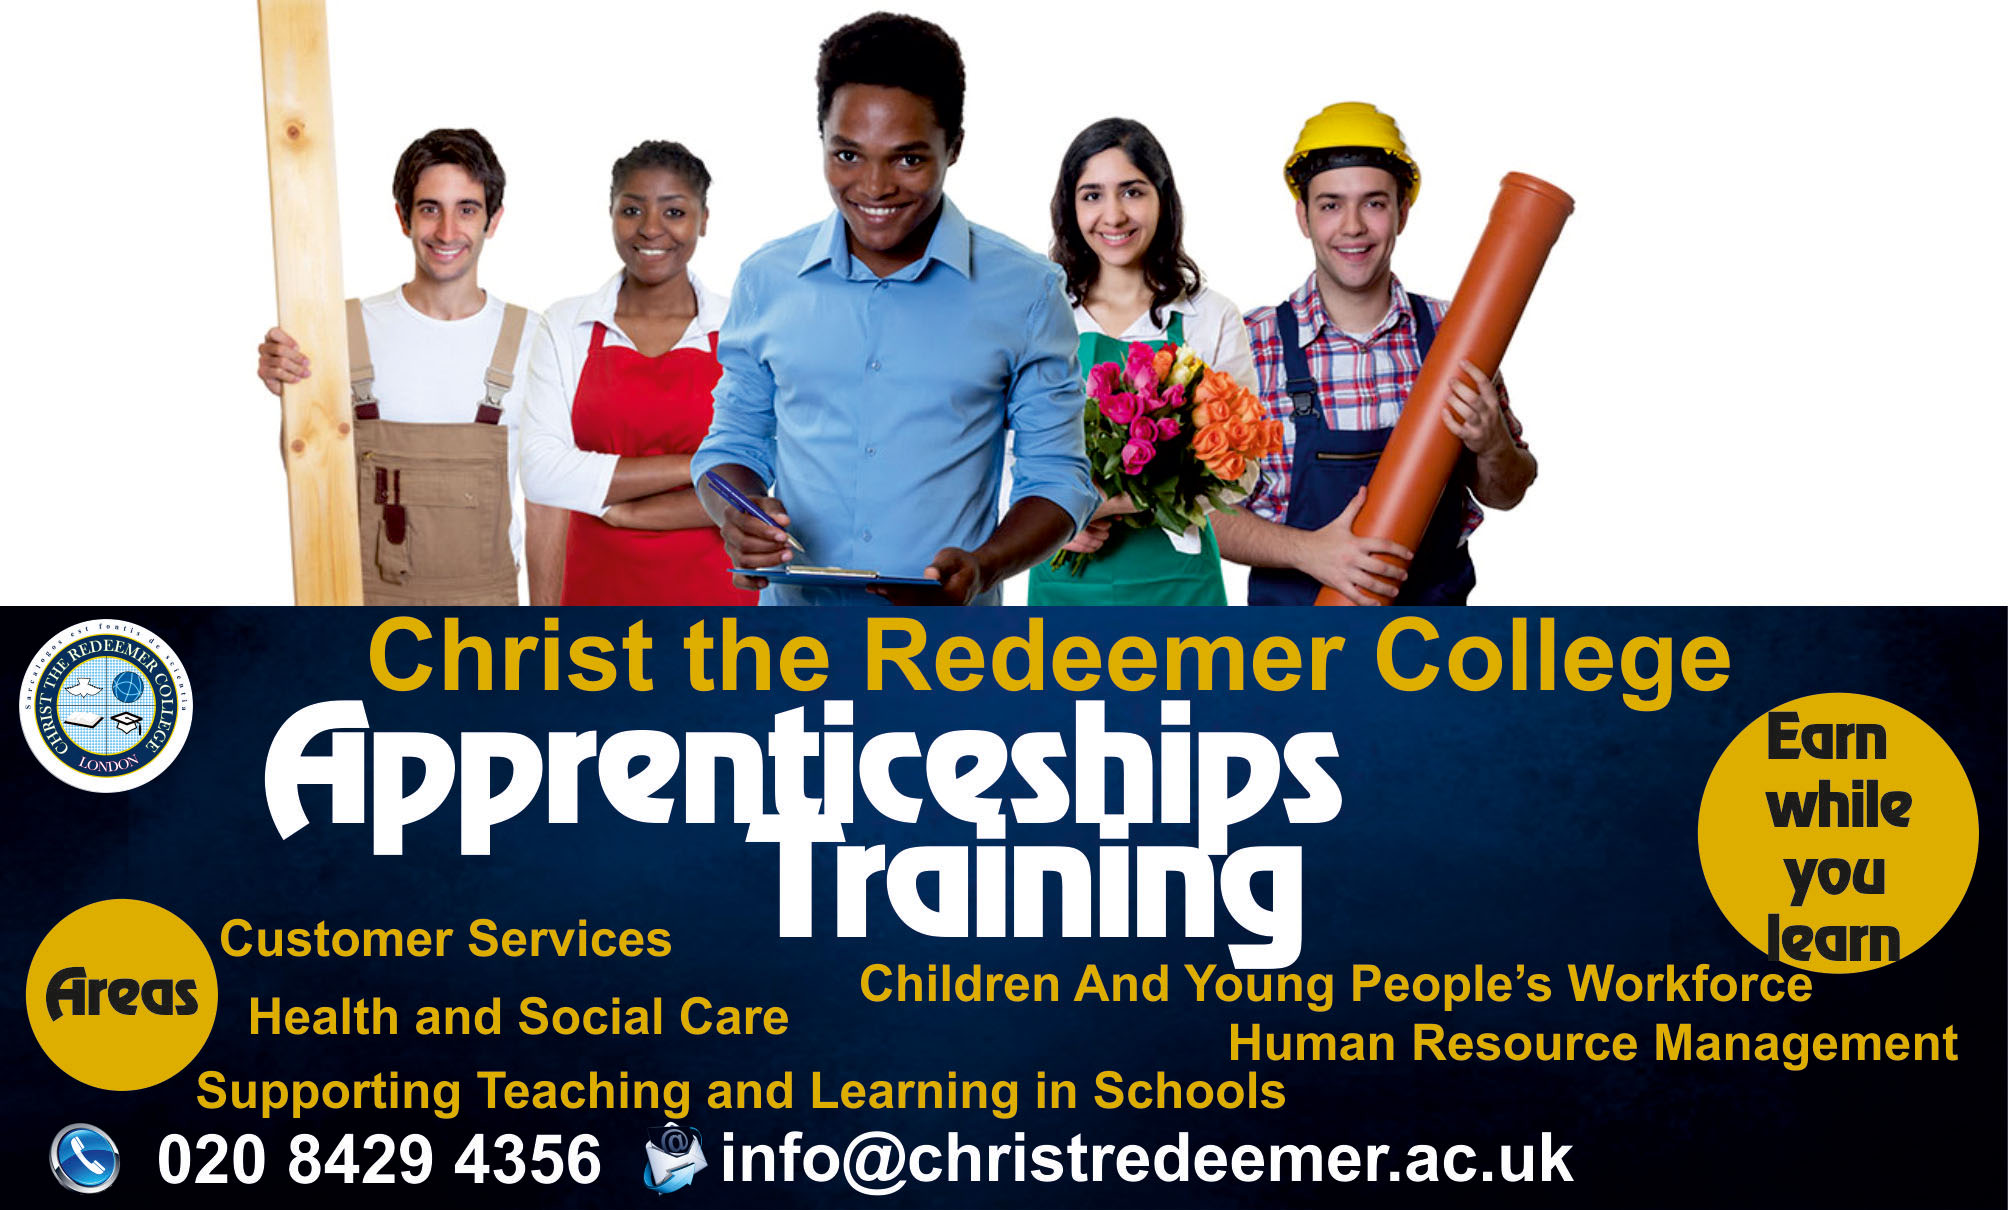 Advert for apprenticeships at CRC